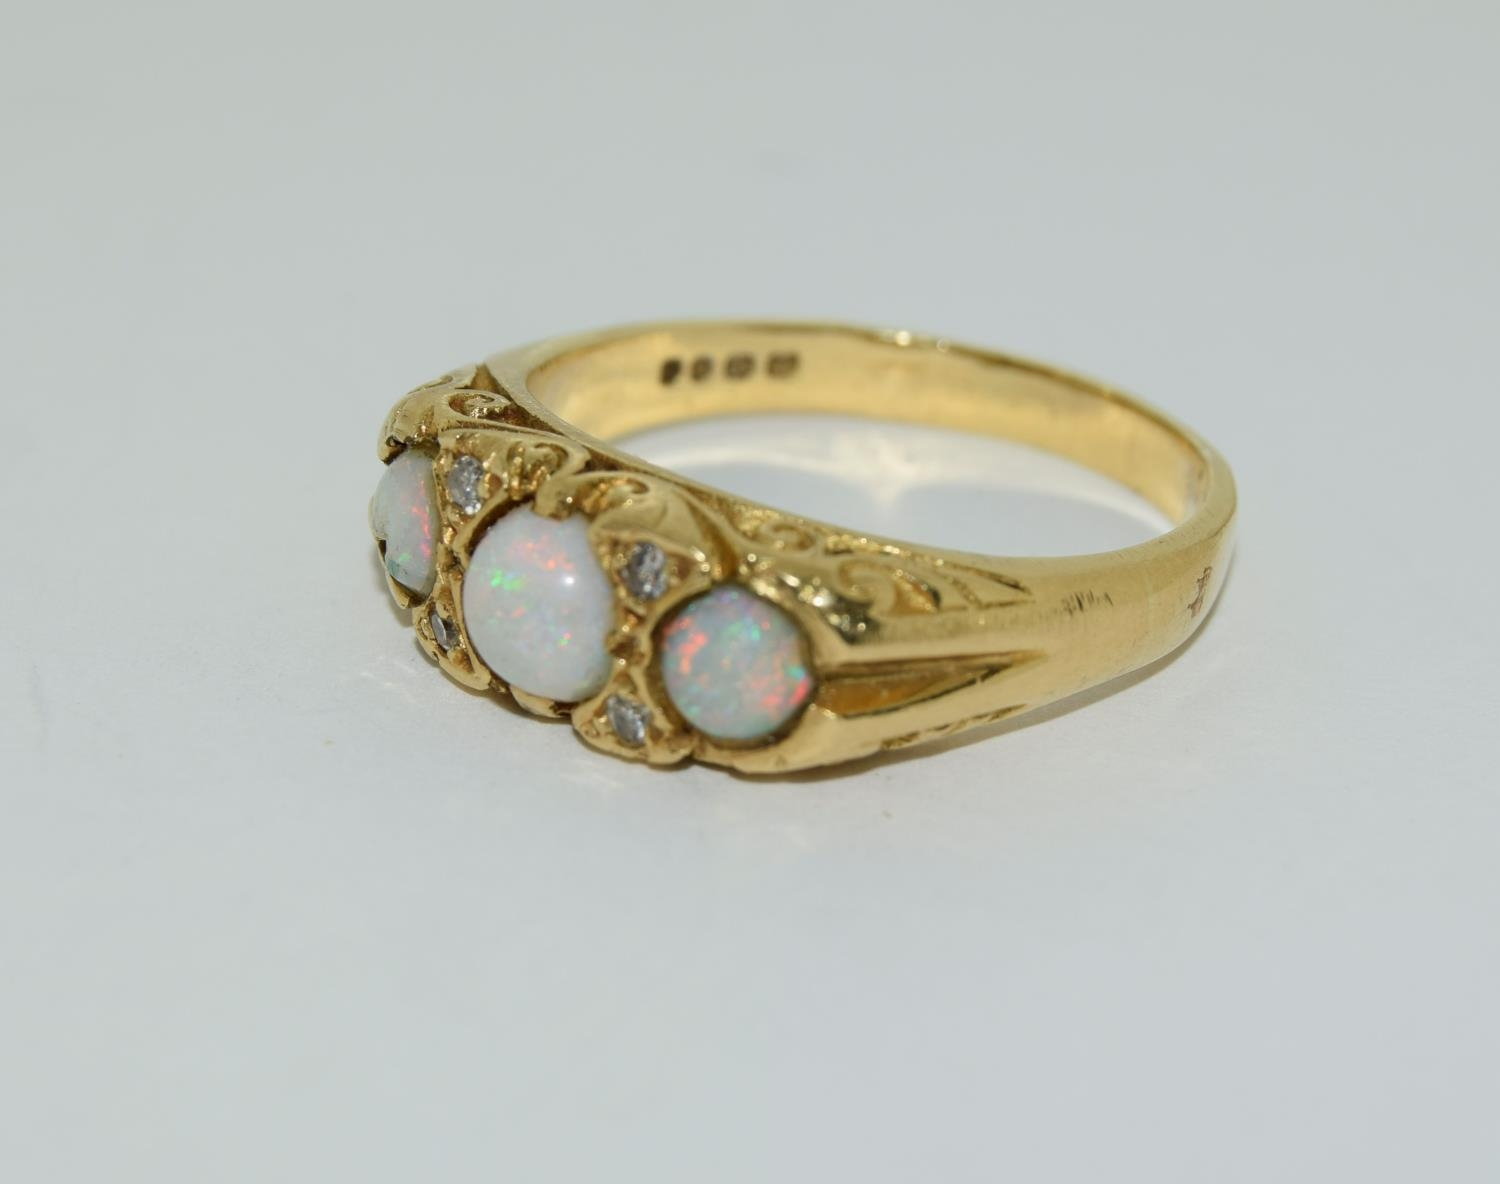 Opal/Diamond 3 stone 18ct gold heavy 6.6g ring, Size P. - Image 4 of 6